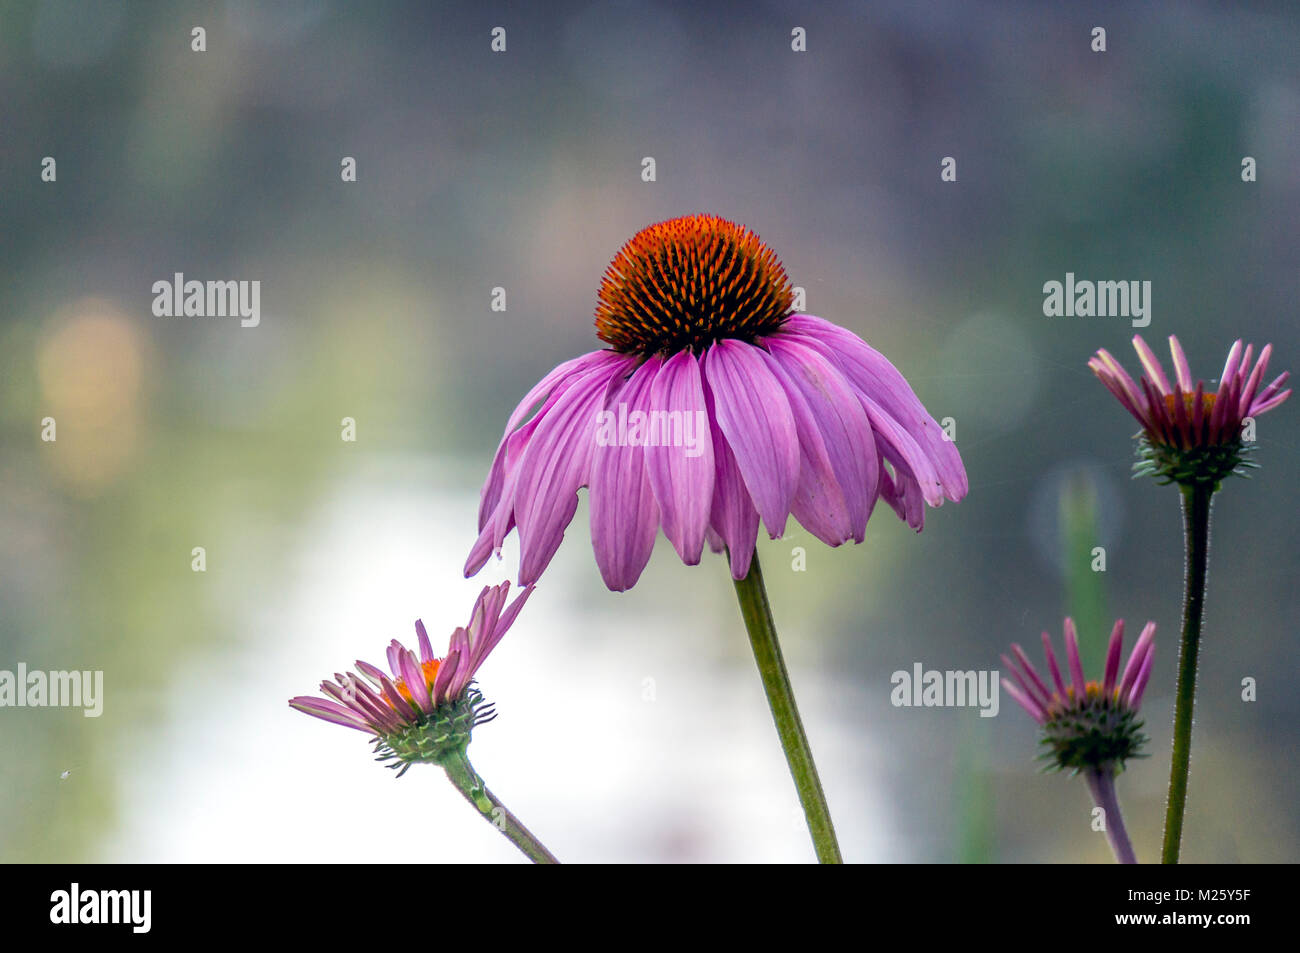 Echinacea purpurea purple cone flower in summer - Stock Image